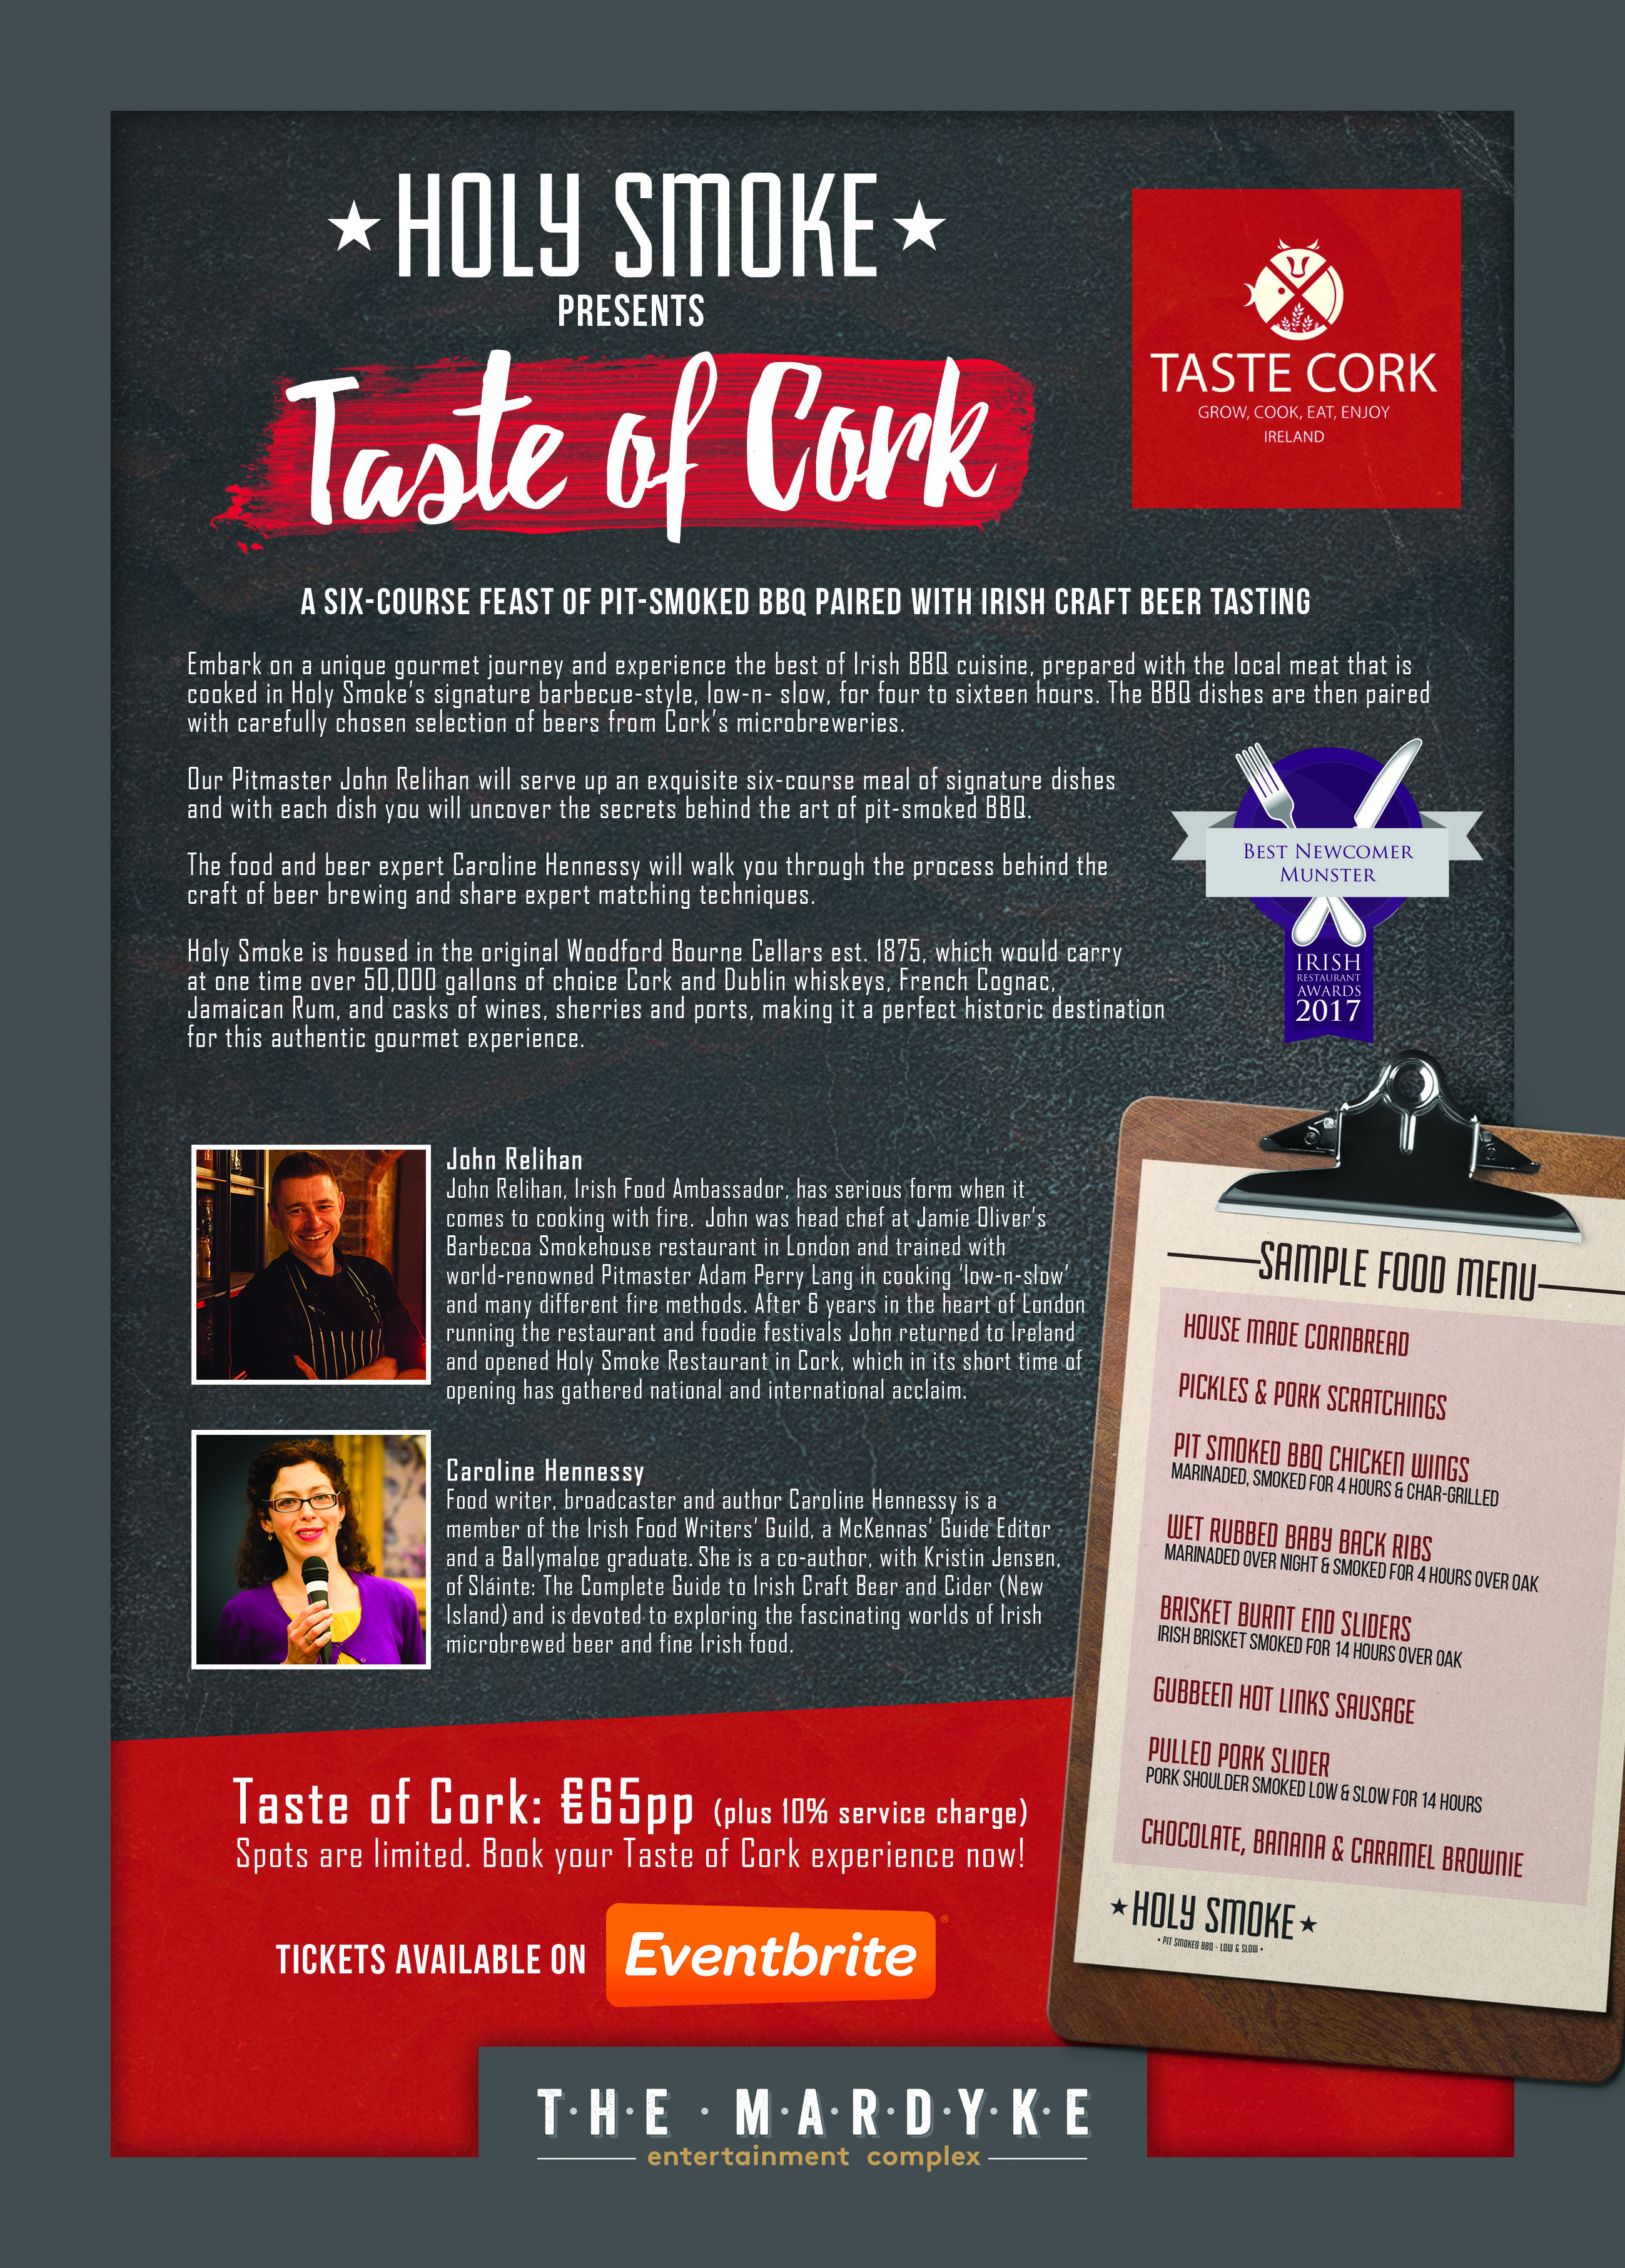 taste_of_cork_description